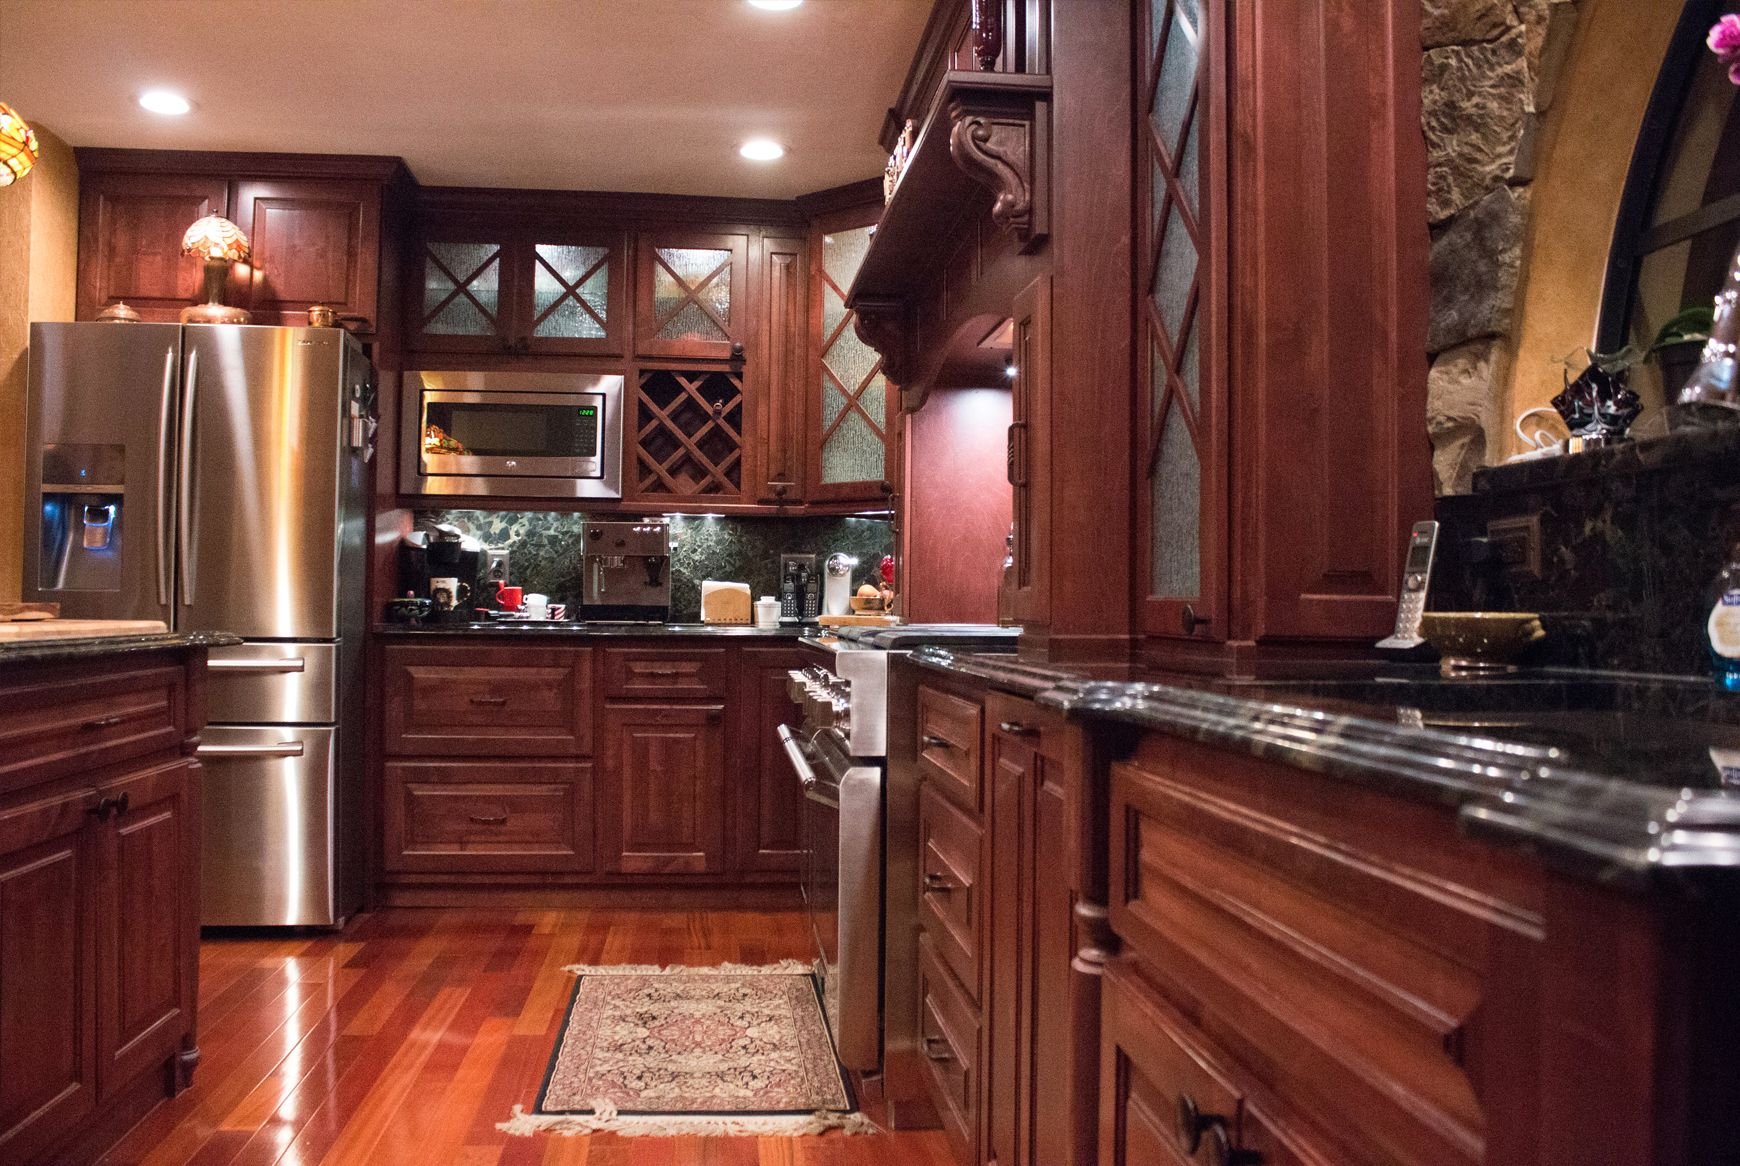 Custom Cabinetry Trinity Kitchens And Baths Home Remodeling Custom Cabinetry Kitchen And Bath